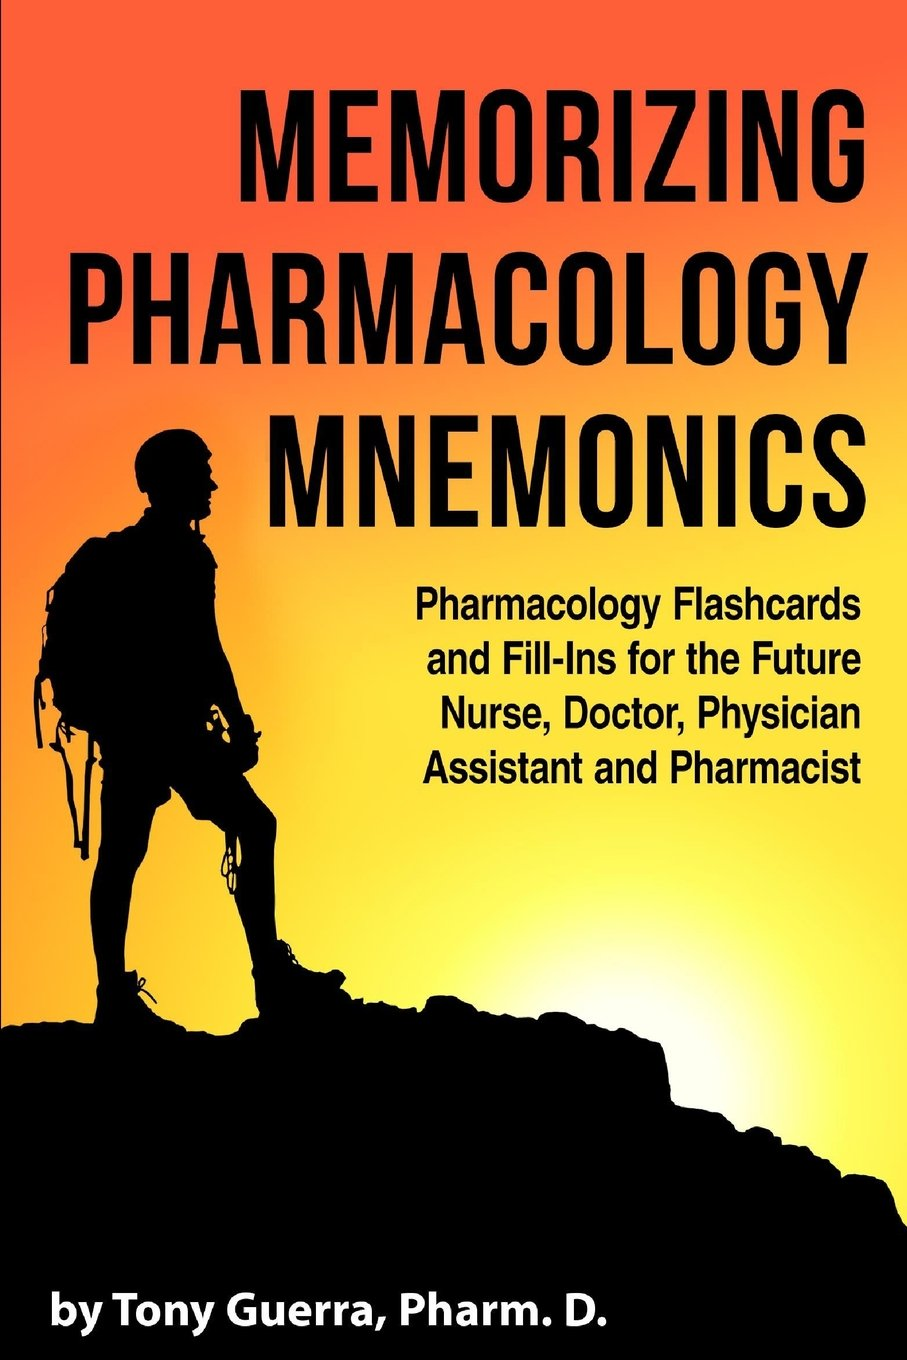 Memorizing Pharmacology Mnemonics: Pharmacology Flashcards and Fill-ins for the Future Nurse, Doctor, Physician Assistant, and Pharmacist: Amazon.es: Tony ...